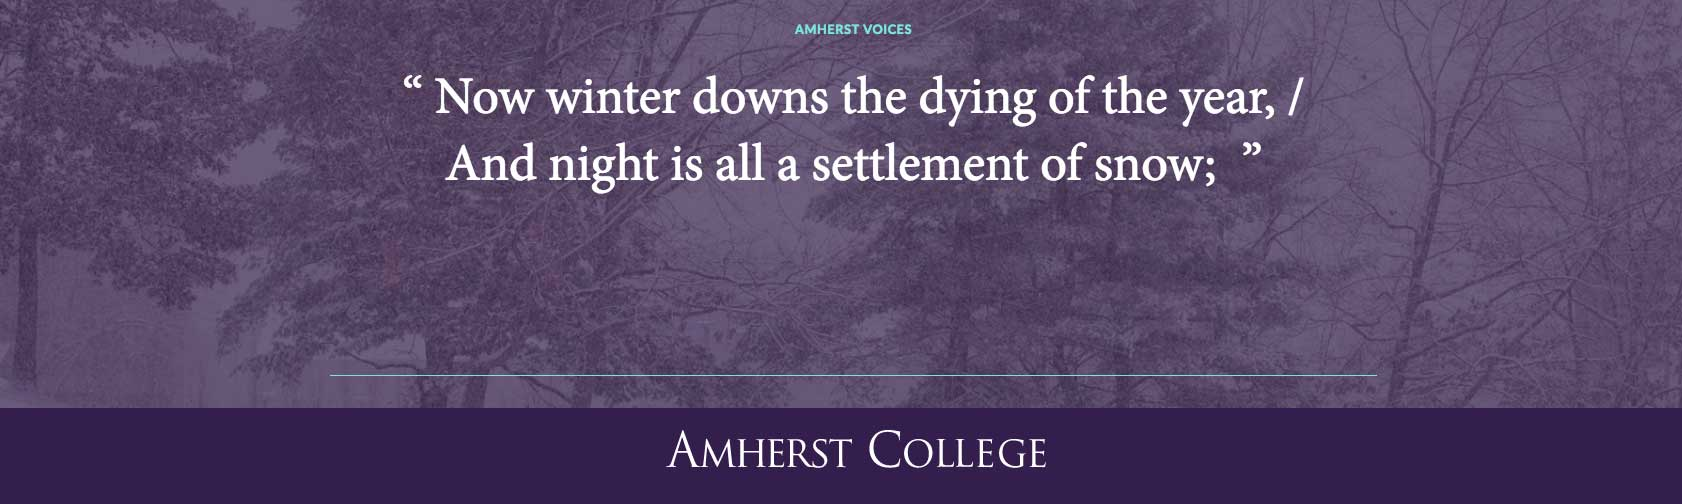 """Now winter downs the dying of the year, / And night is all a settlement of snow;"" by Richard Wilbur"